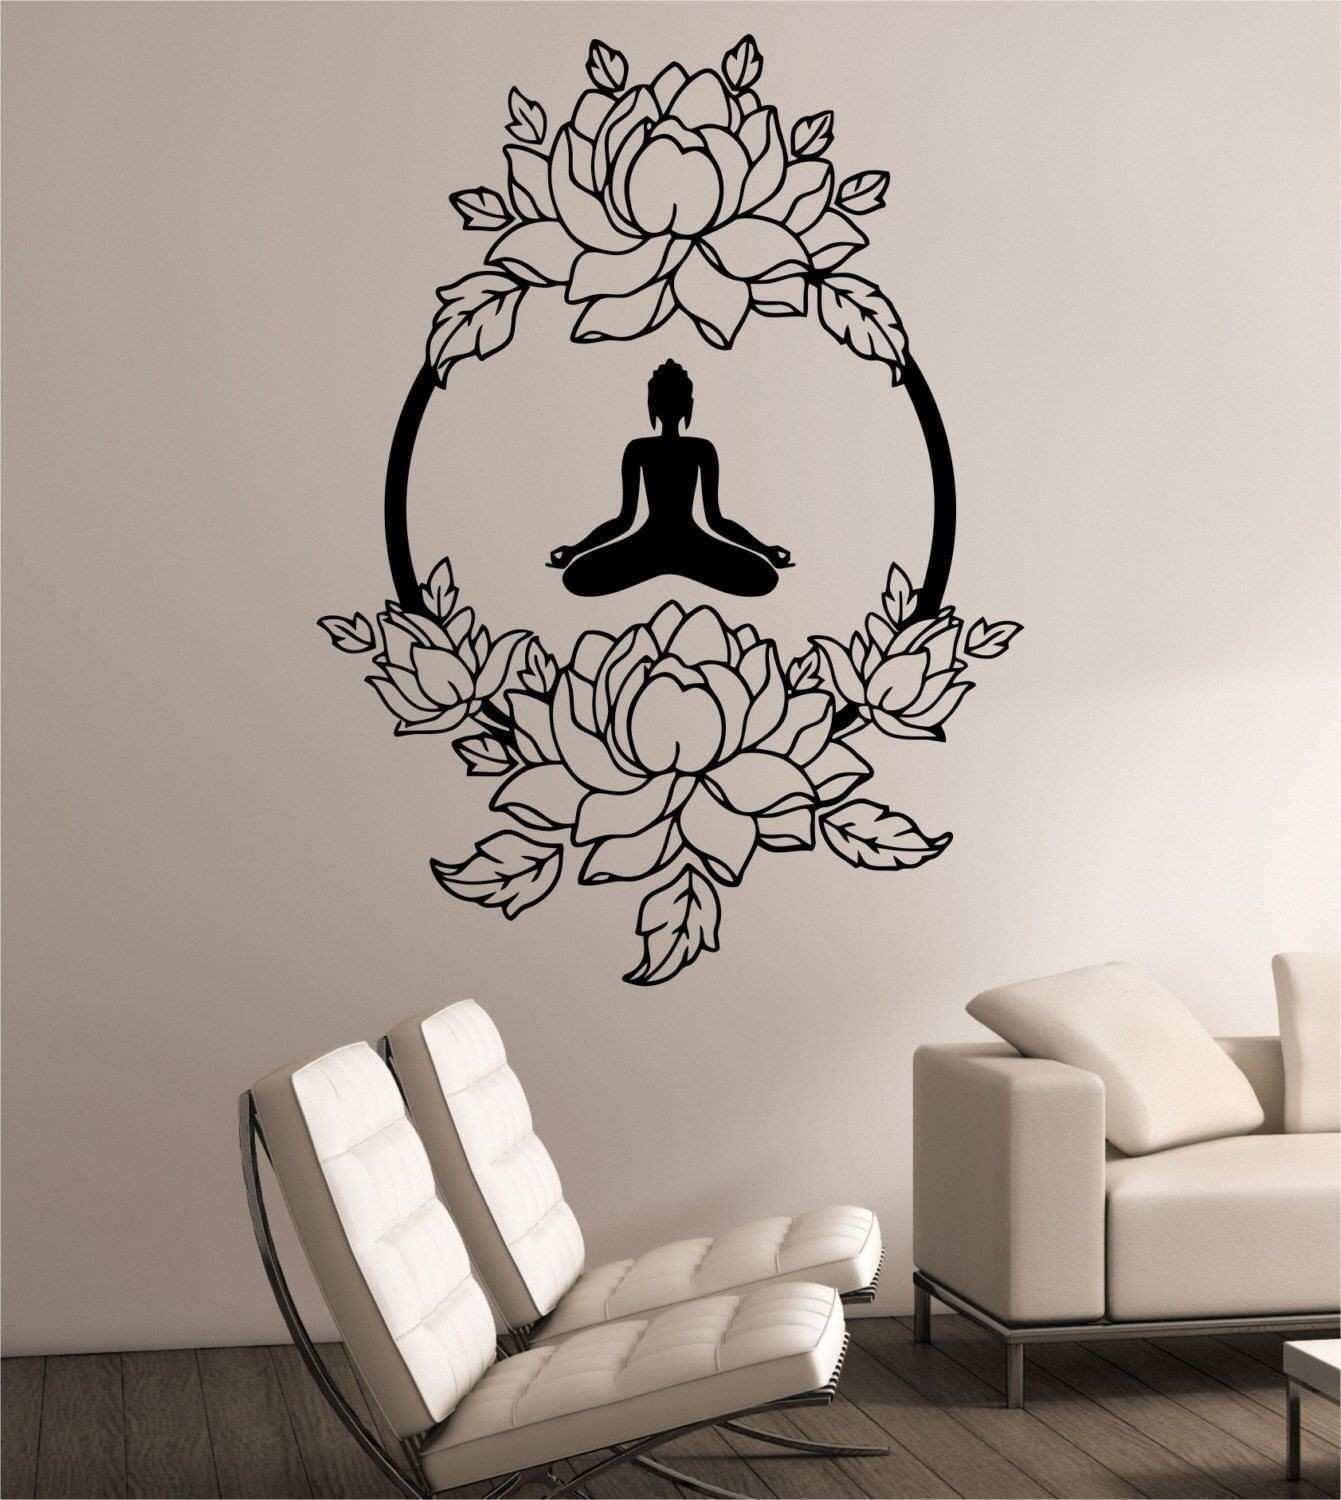 Awesome Wall Decals for Craft Room